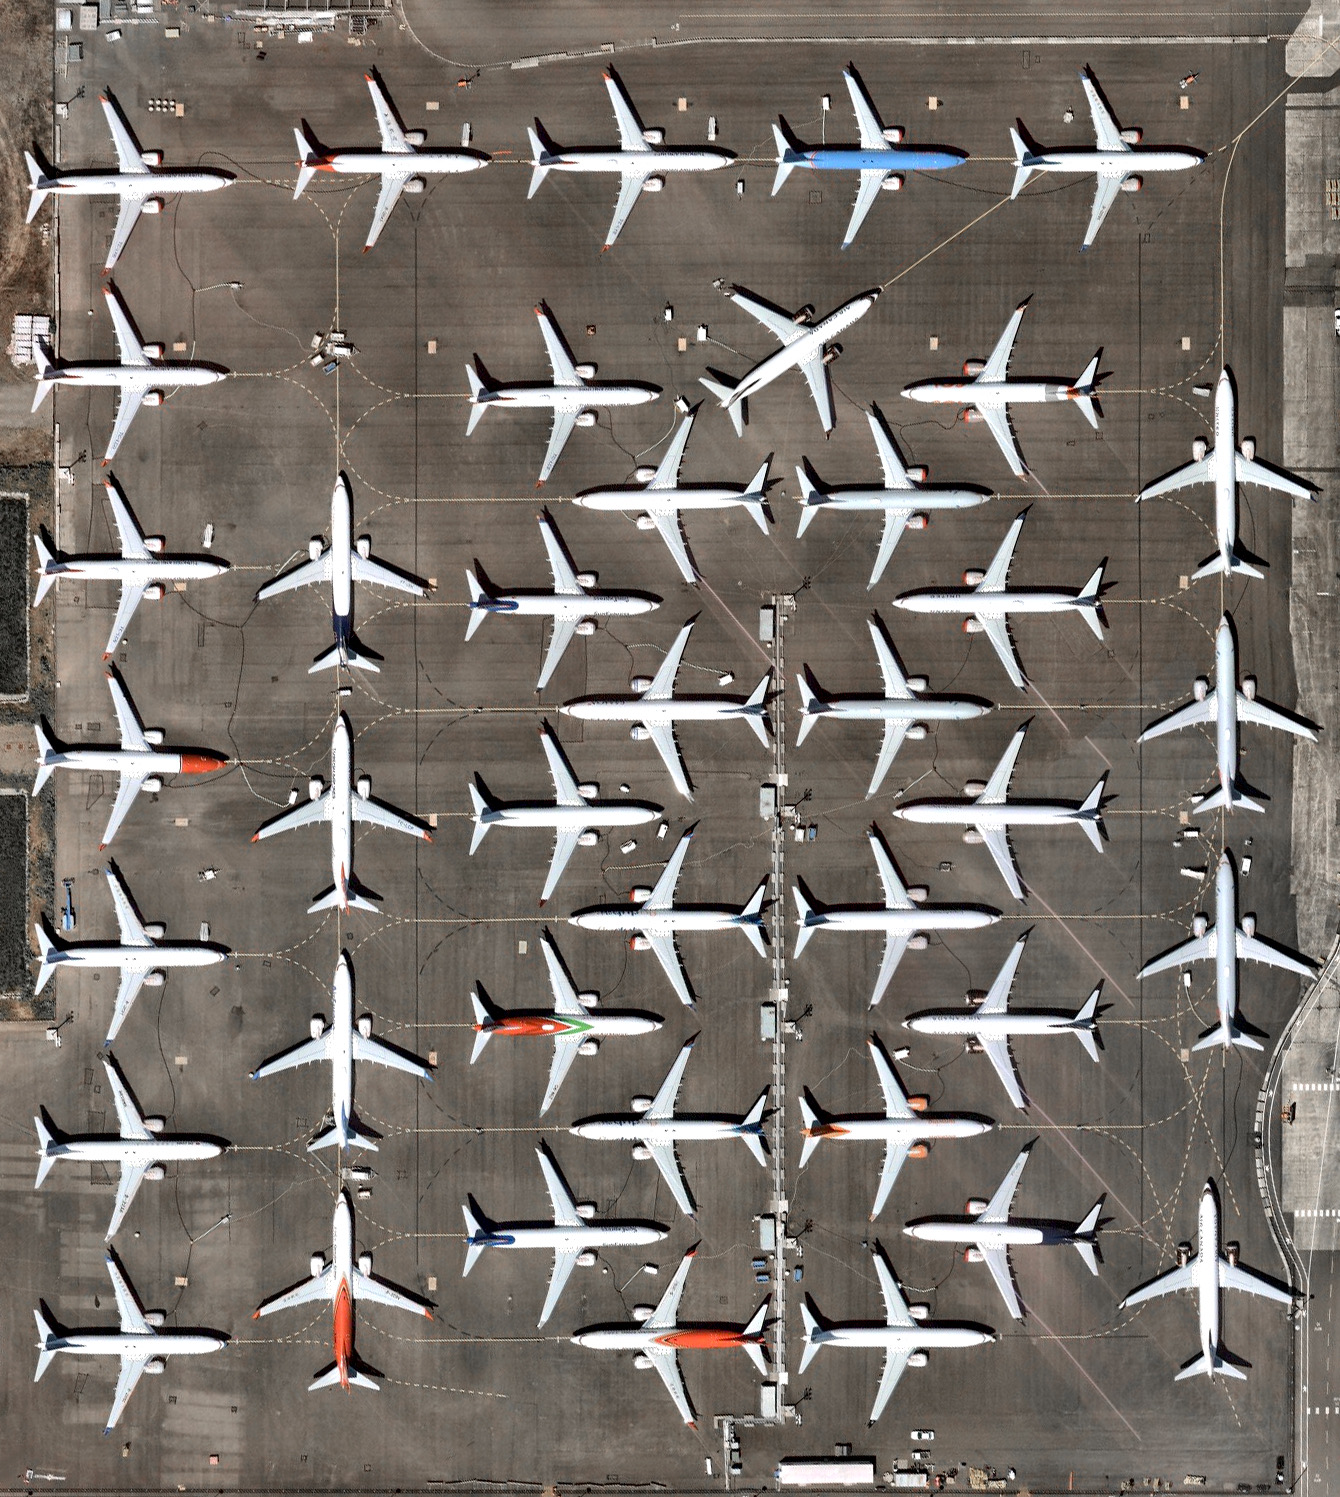 Dozens of 737 MAX jetliners cover a parking lot at Boeing's factory in Seattle, Washington. This model has been grounded since March following two fatal crashes in less than six months. July was Boeing's fifth consecutive month without a new order for the 737 MAX and its least productive month for plane deliveries since November 2008.  47.529245, -122.309162°  Source imagery: Nearmap